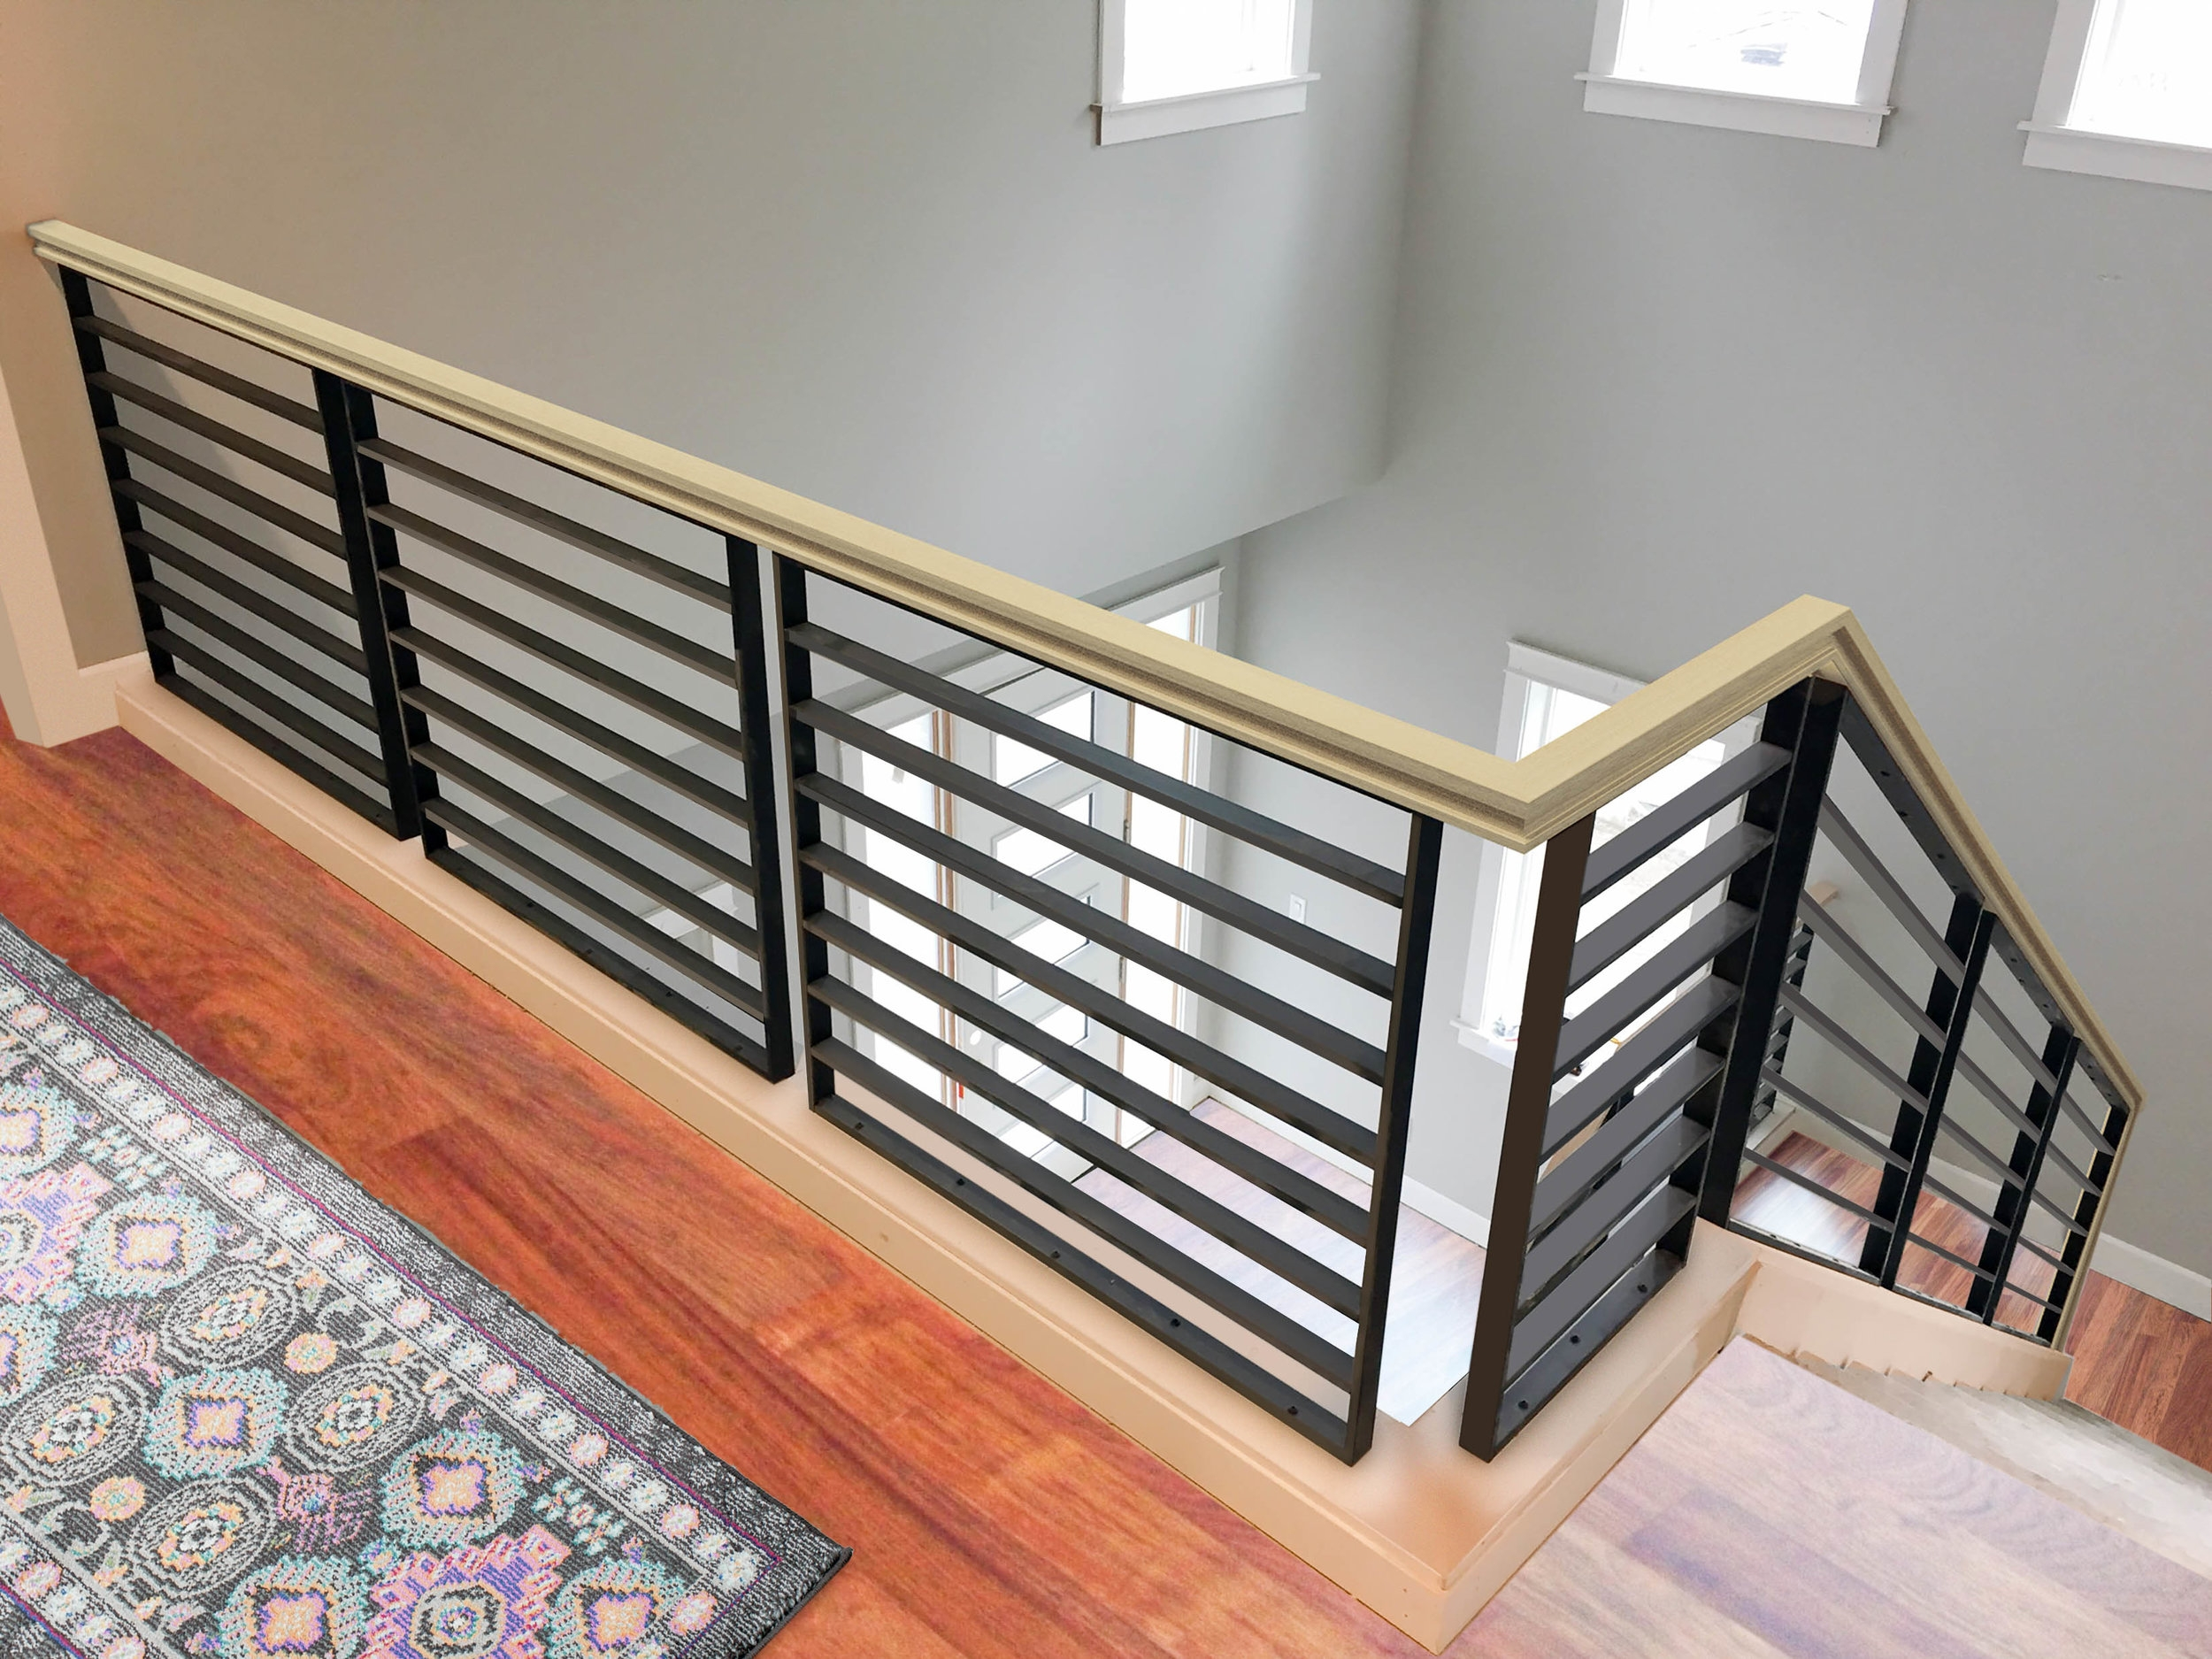 Linear Metal Panels — Oak Pointe Stair Parts And More | Wood And Metal Handrail | Interior | Iron Railing | Architectural Modern Wood Stair | Stainless Steel | Traditional